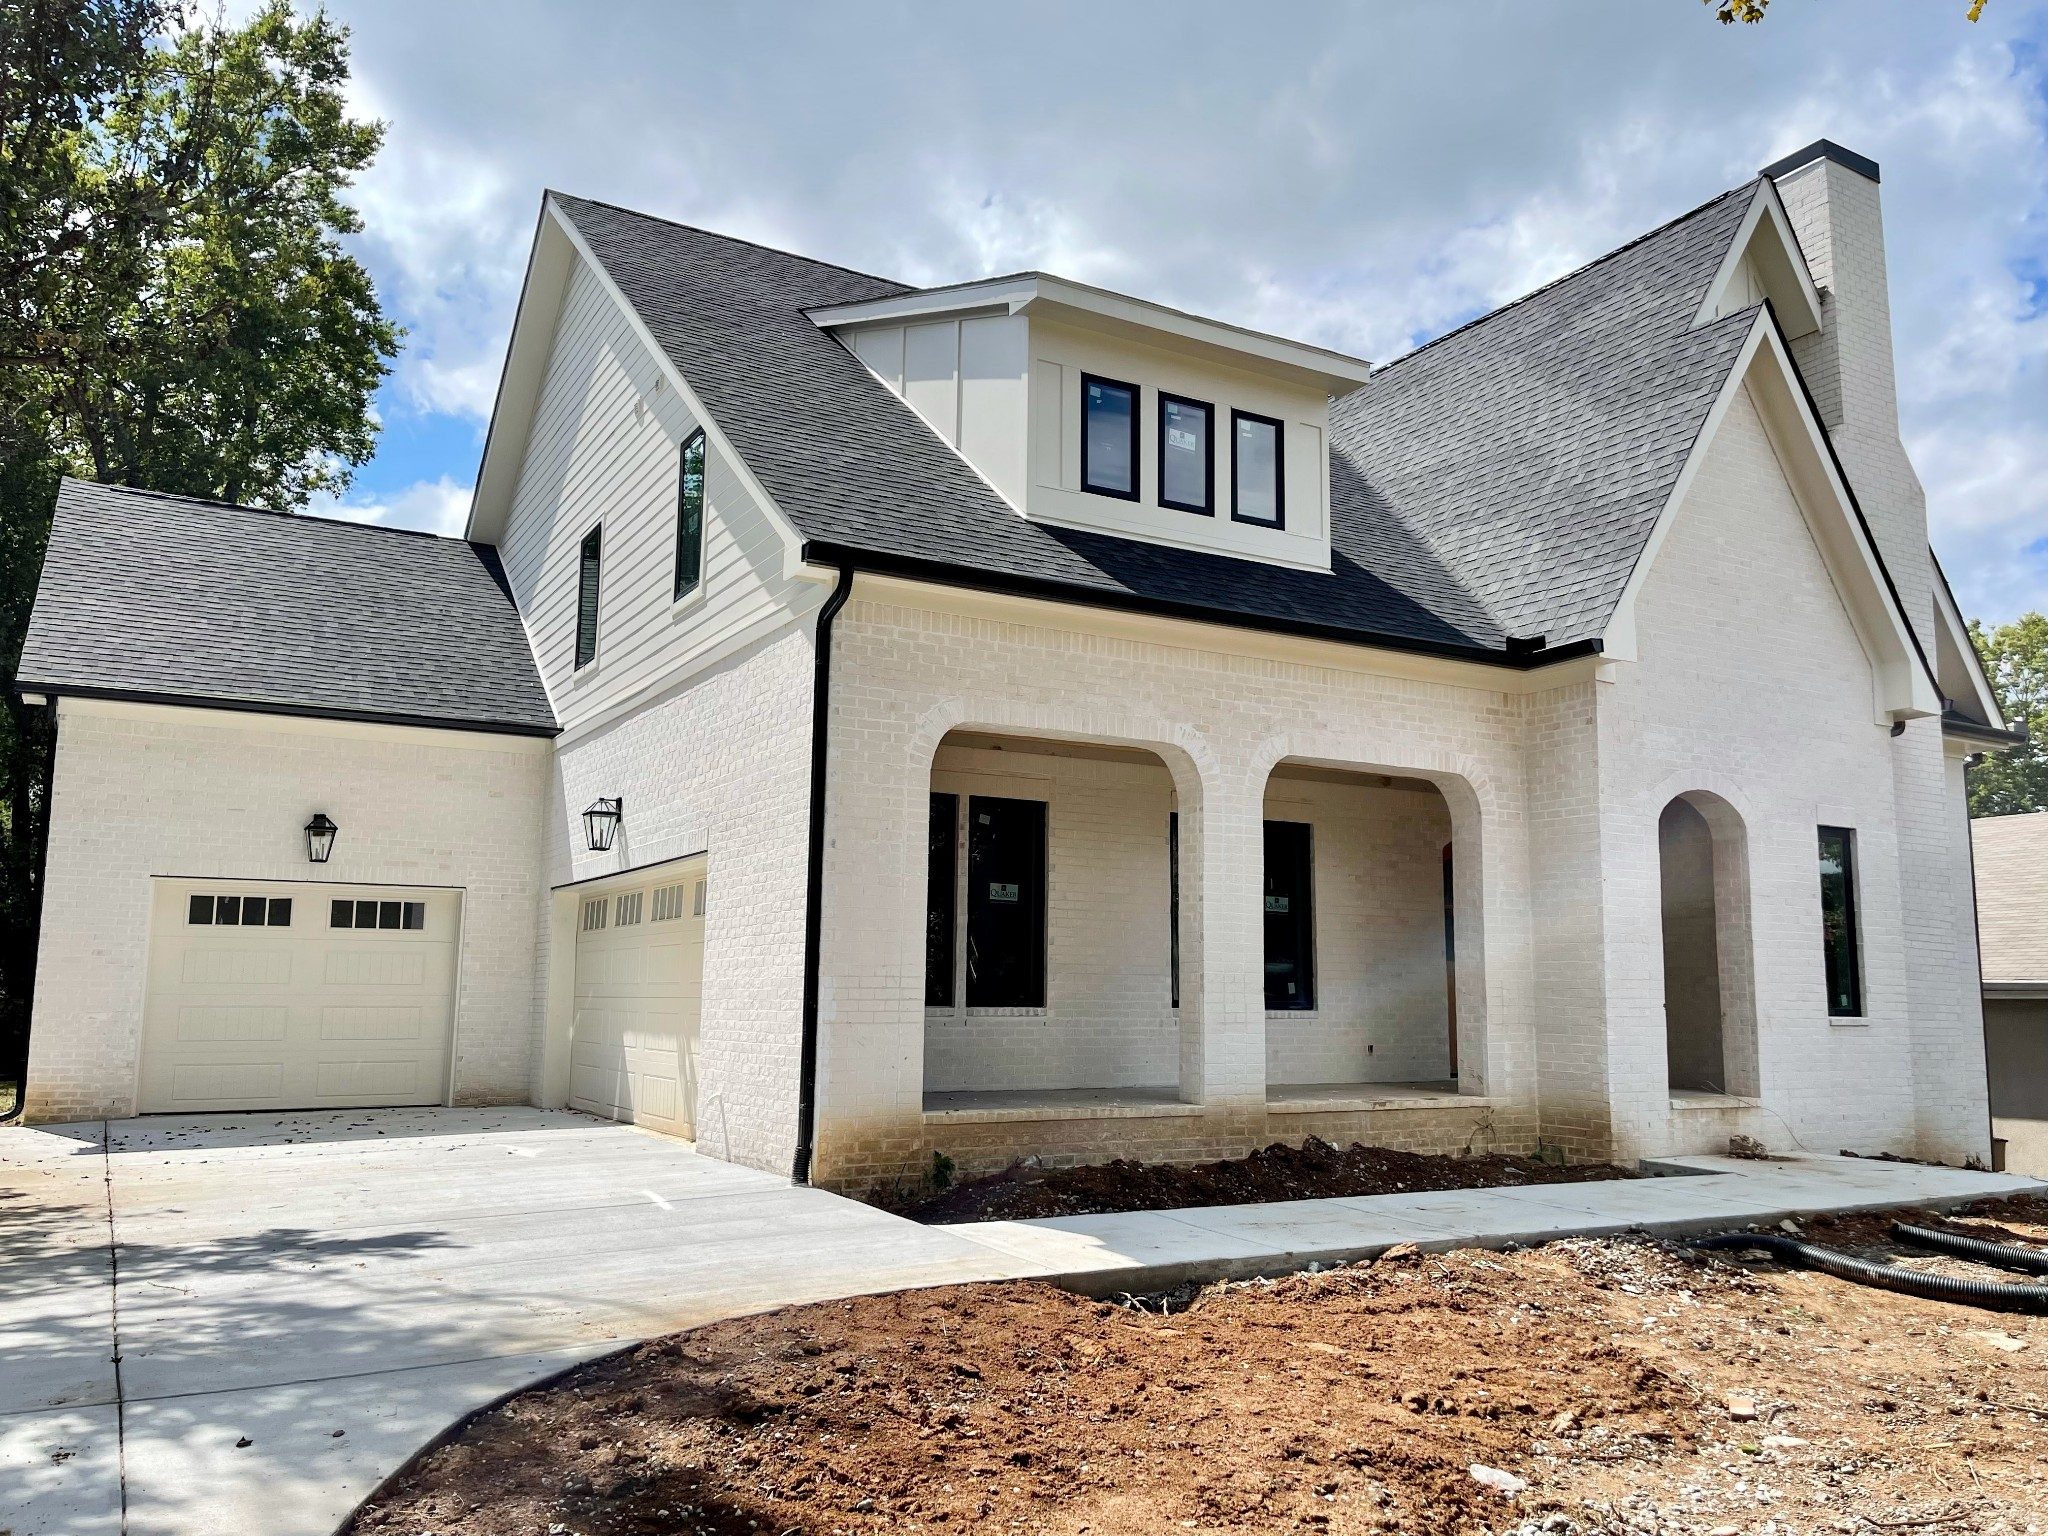 LOCATION LOCATION LOCATION! Built by Cadence Construction with ALL of the high end finishes! This one of a kind home boasts 5 beds 5.5 baths! 2 beds 2 full baths on the main floor-Master bath is unbelievably stunning-HUGE master closet w/washer&dryer- Beautiful kitchen w/incredible butler's pantry/drop zone-Thermador appliances-Open concept living-massive bonus rm w/half bath-pre wired sound insulated media rm-Life Management Center upstairs w/washer&dryer-covered deck w/fireplace-ALL THE THINGS